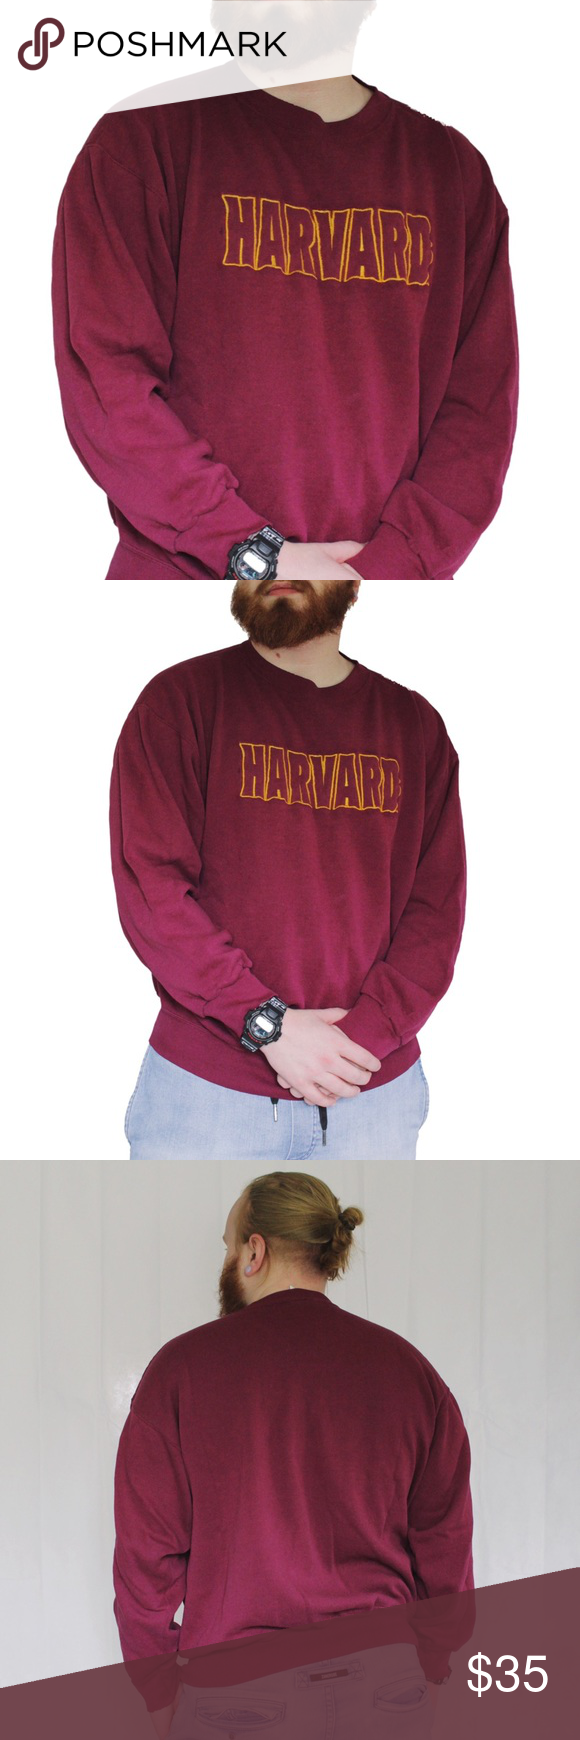 1980 harvard spell out embroidered sweatshirt embroidered